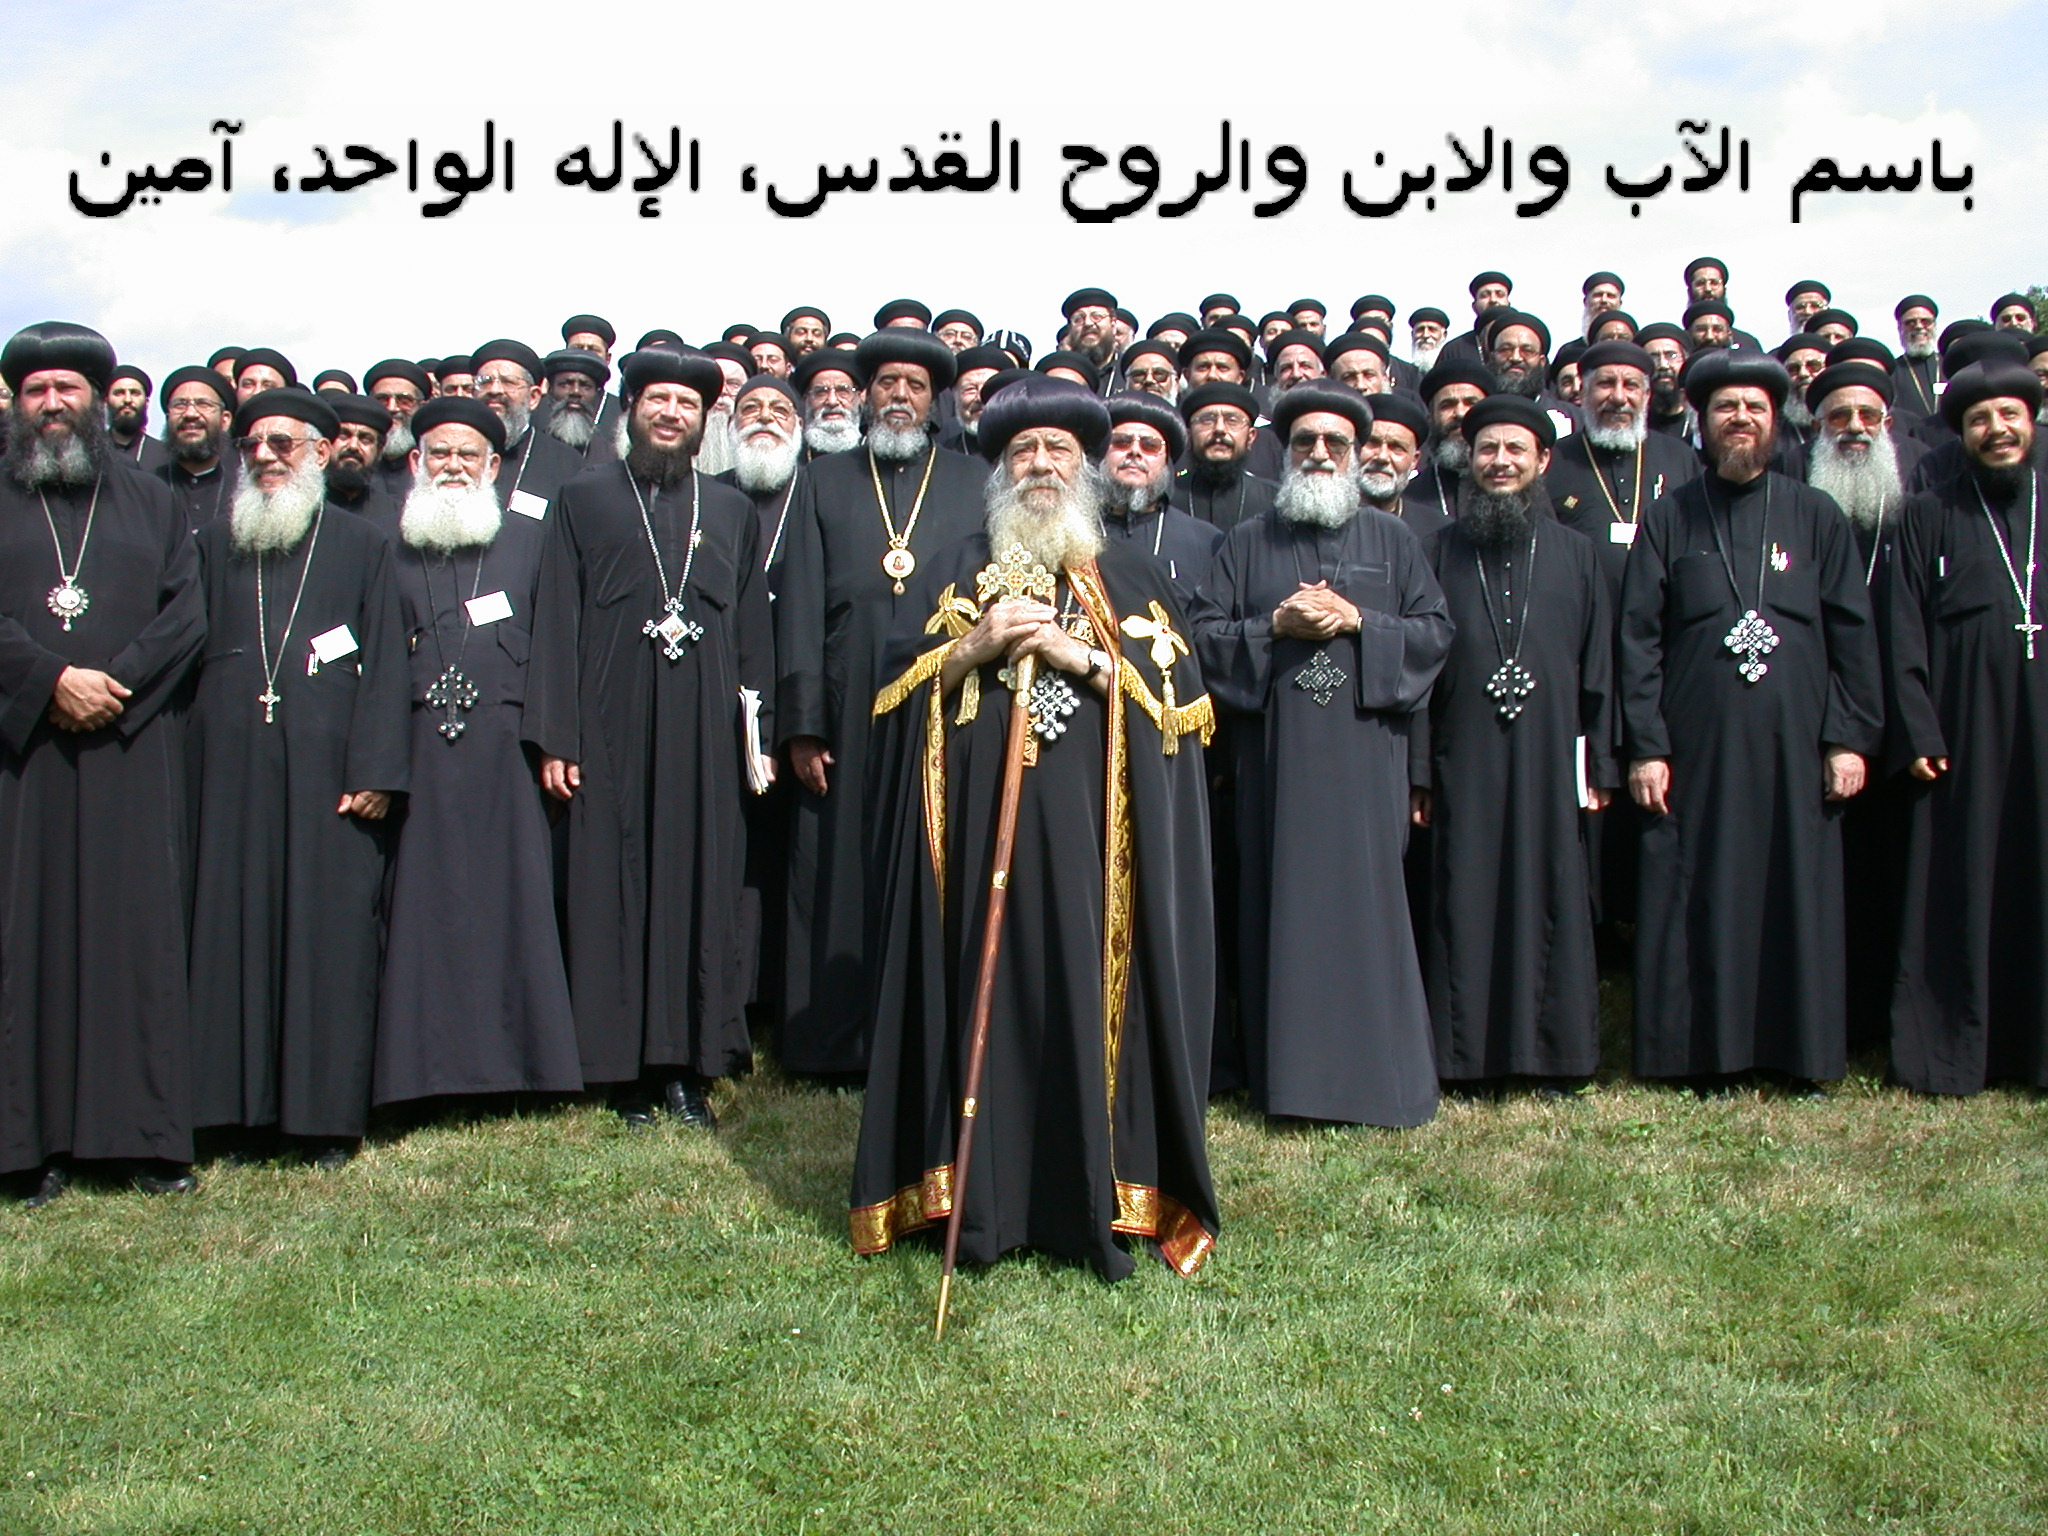 Hh pope shenouda and north american clergy 2 001